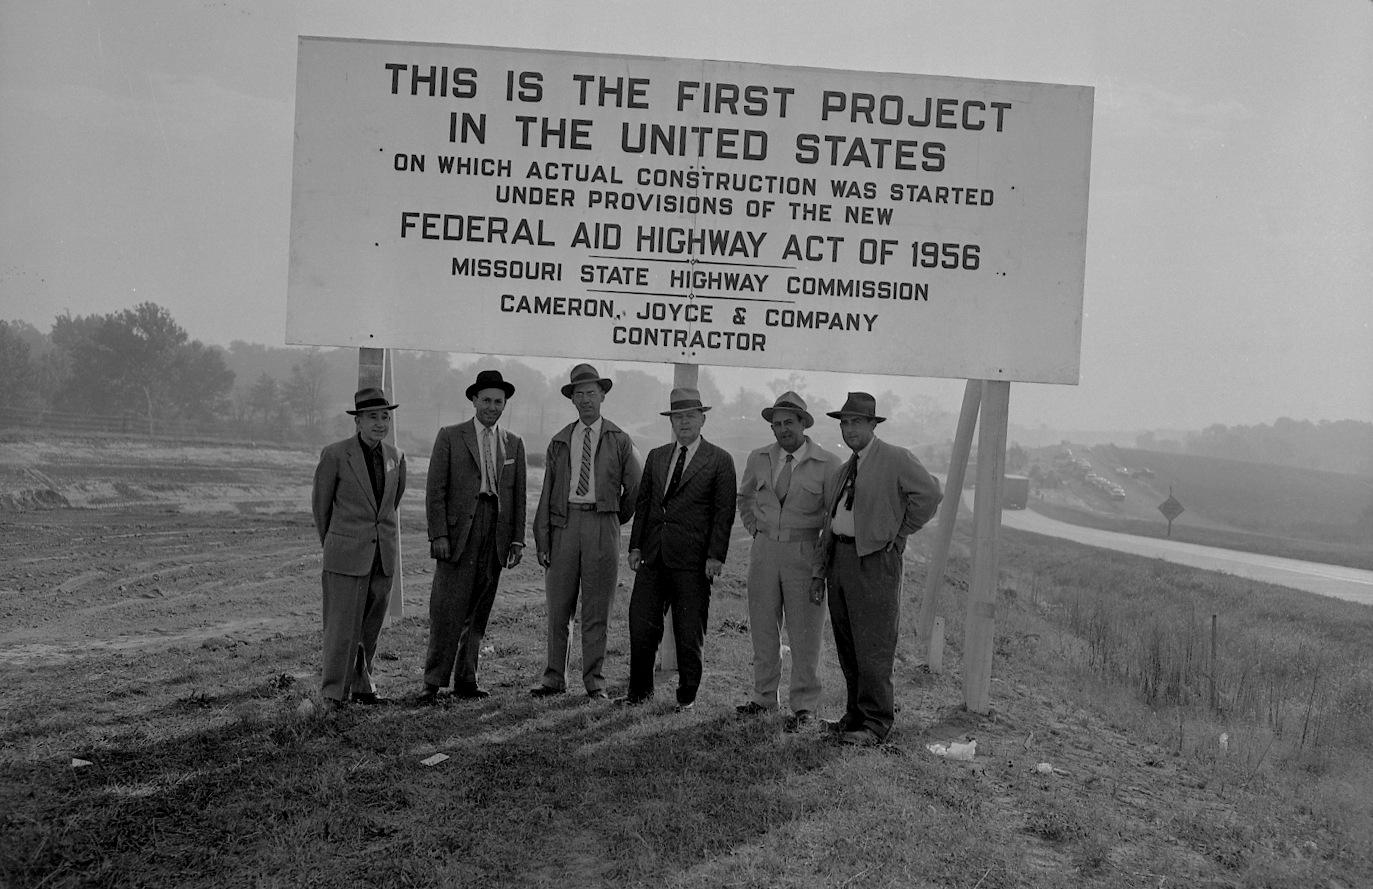 Missouri is where the first project on which actual construction began under the Federal-Aid Highway Act of 1956. This sign was put up to commemorate the project along U.S. 40 (the future I-70) in St. Charles County. (photo credit: Missouri Department of Transportation)